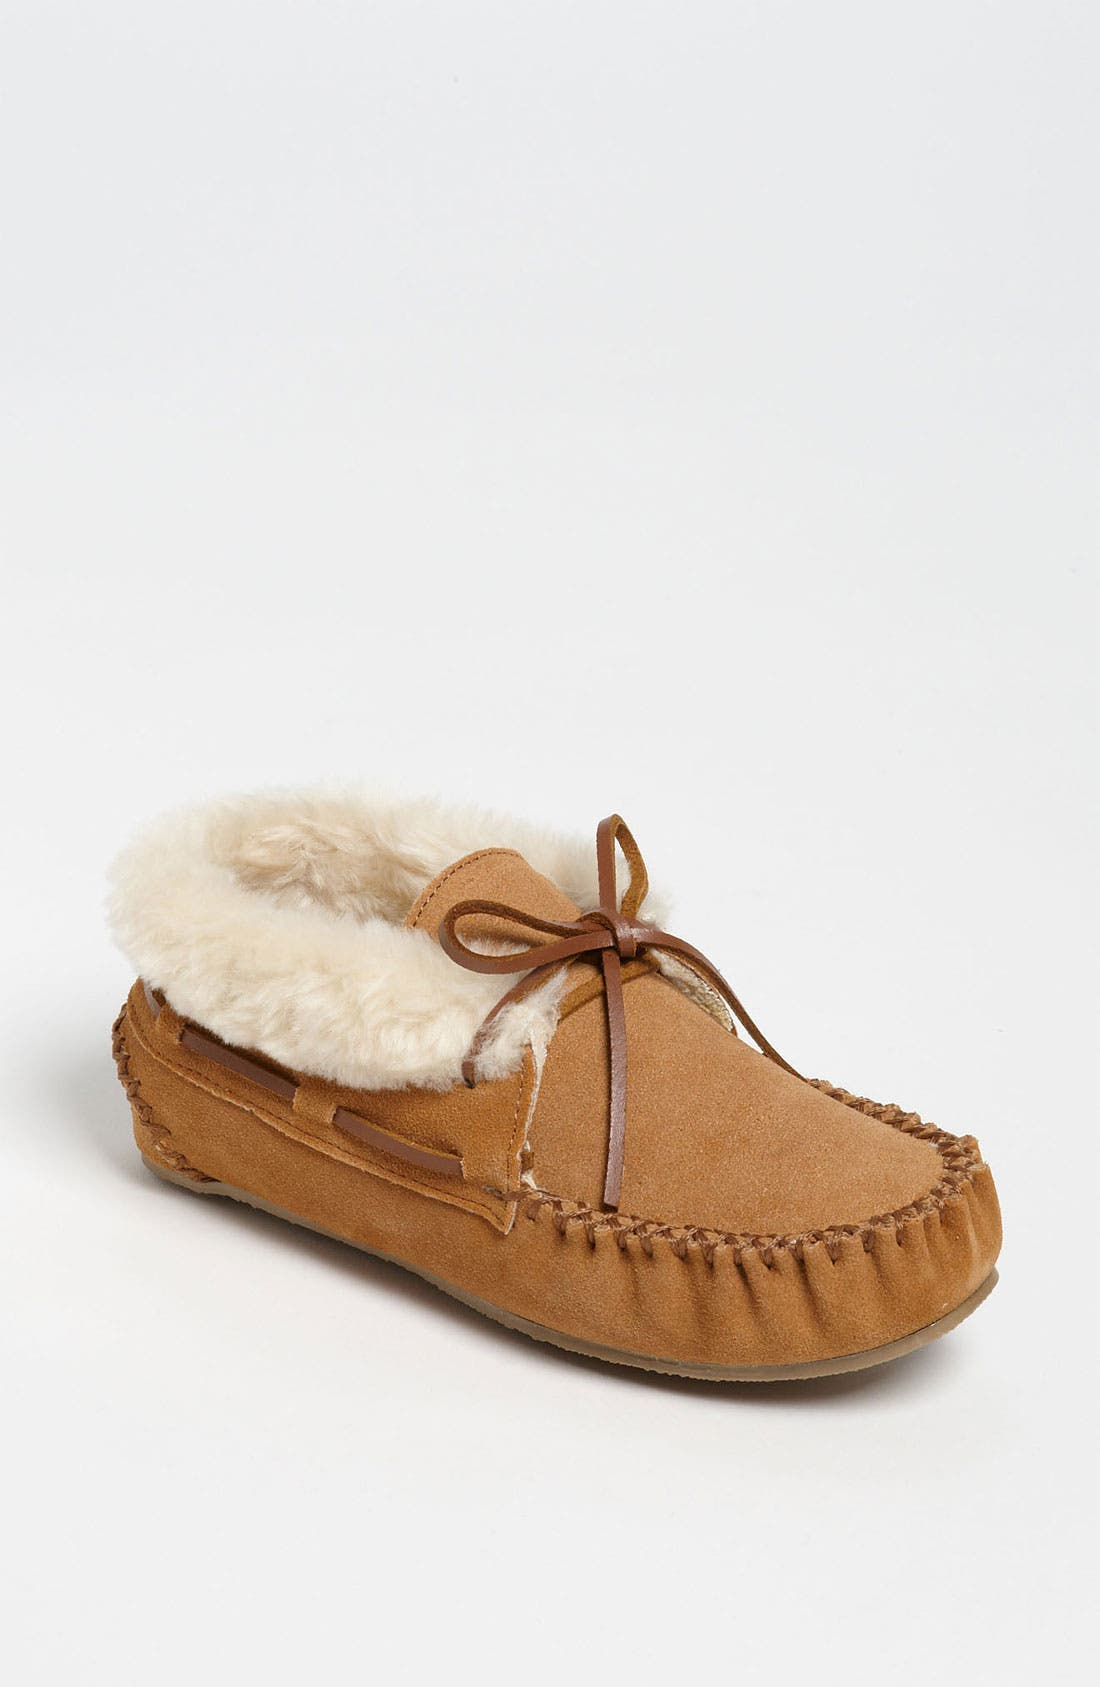 'Chrissy' Slipper Bootie,                         Main,                         color, CINNAMON SUEDE